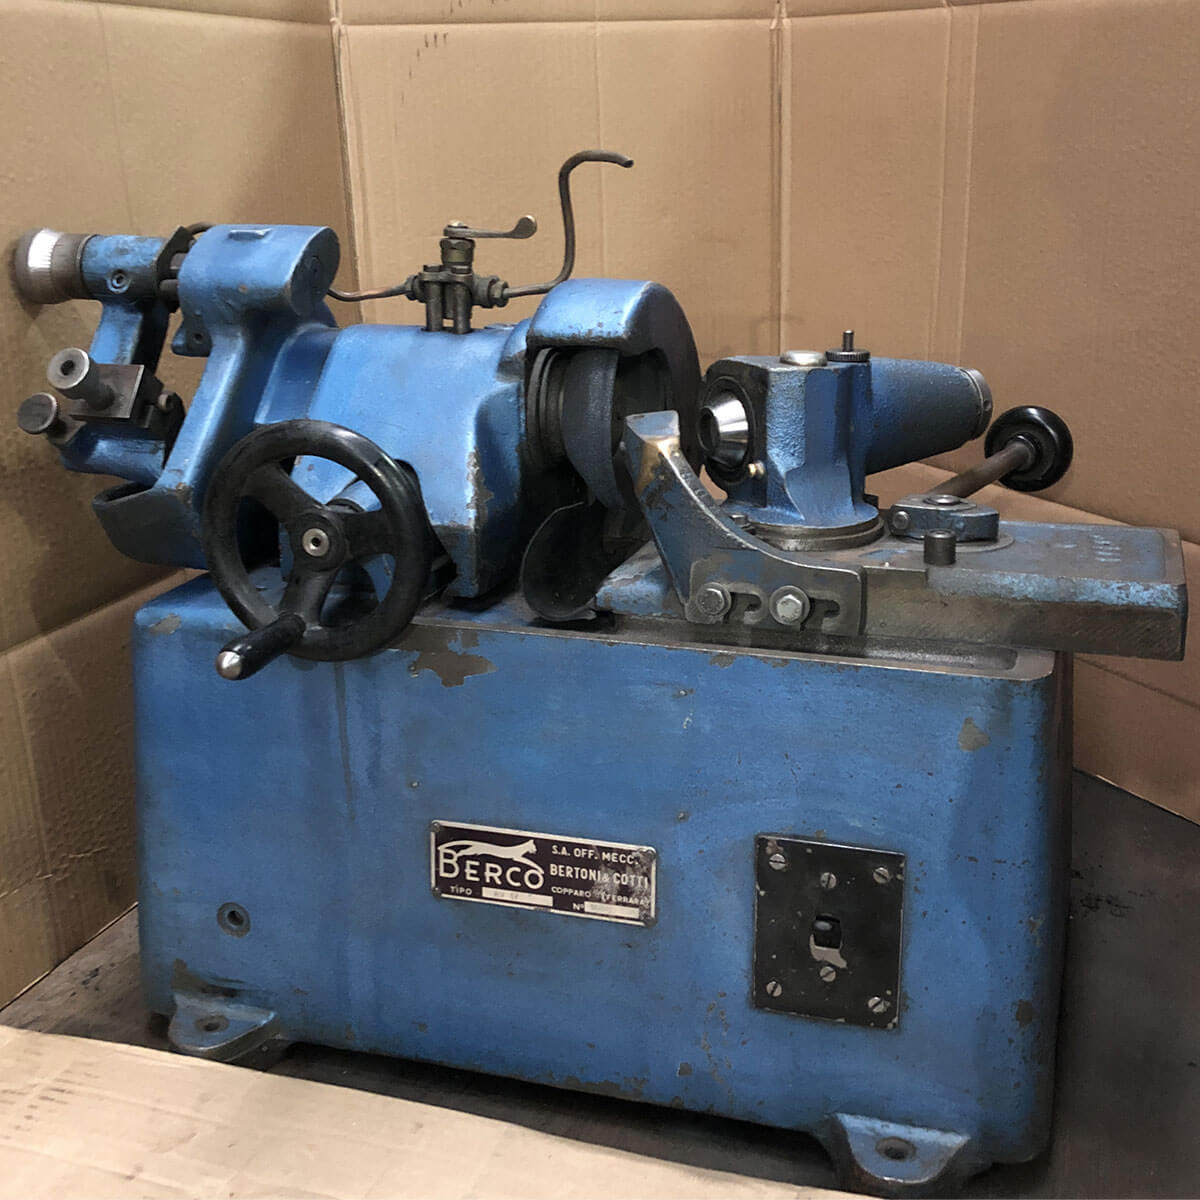 MU776 - BERCO RV 17 Used Valve Grinding Machine